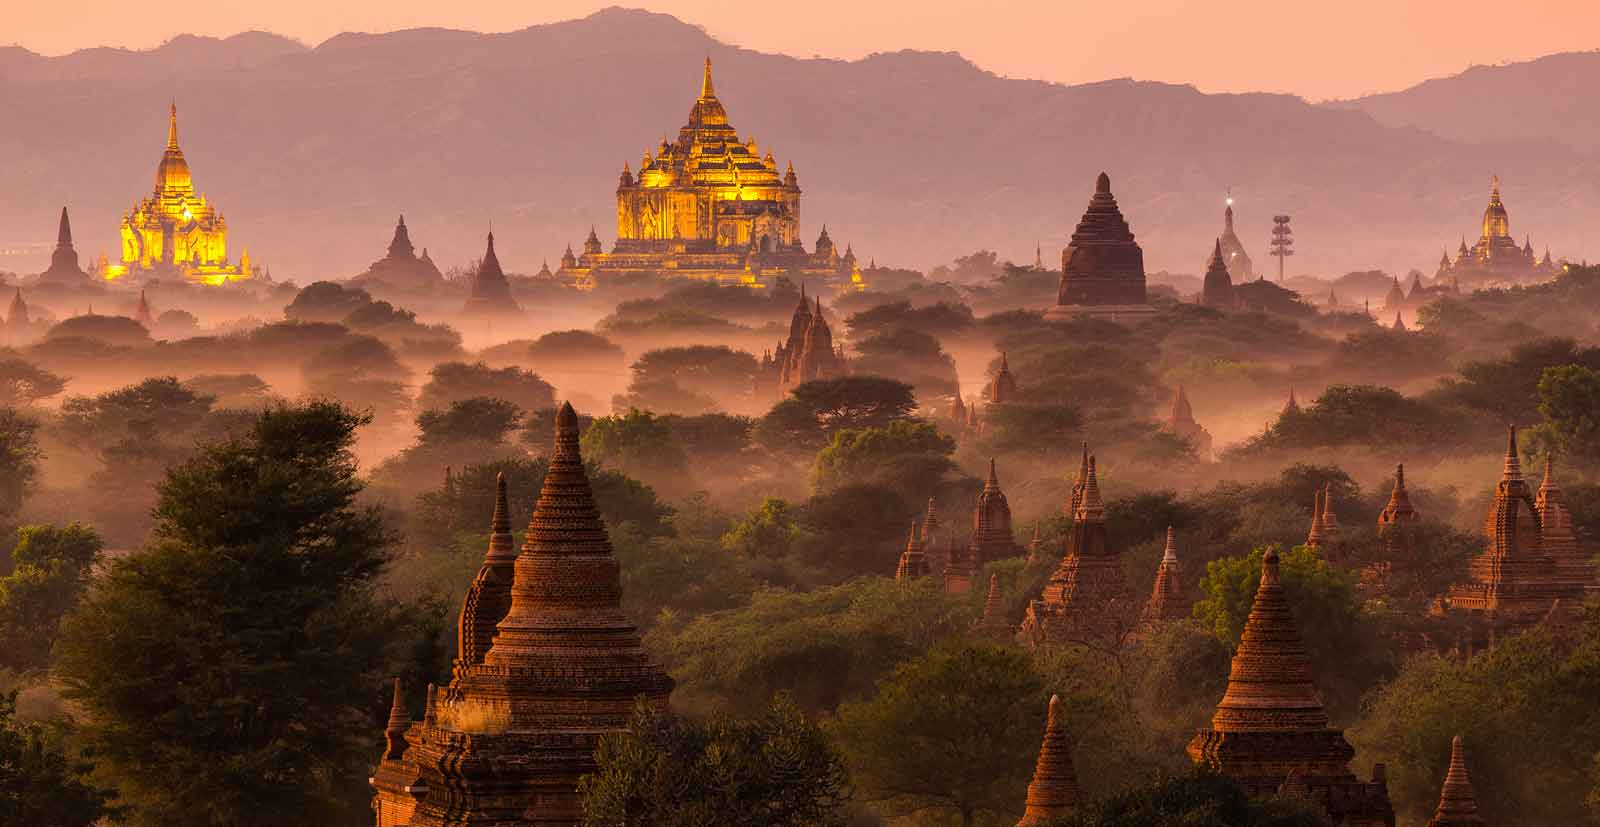 Pandaw Burma Beautiful Pagan 1